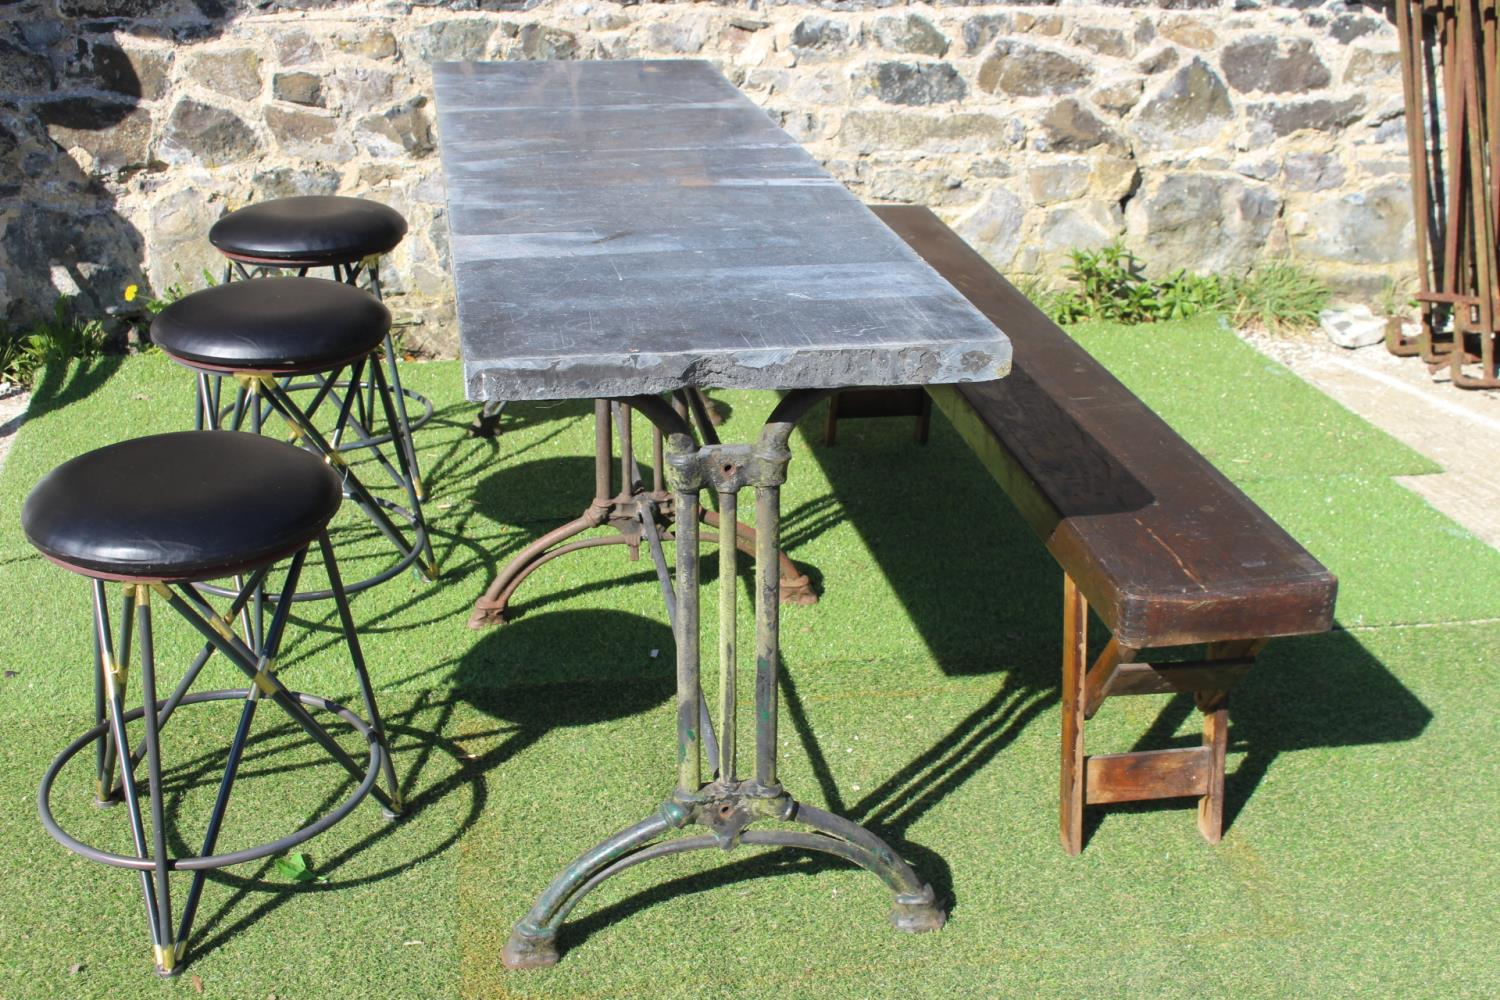 Cast iron table with marble top, bench and stools